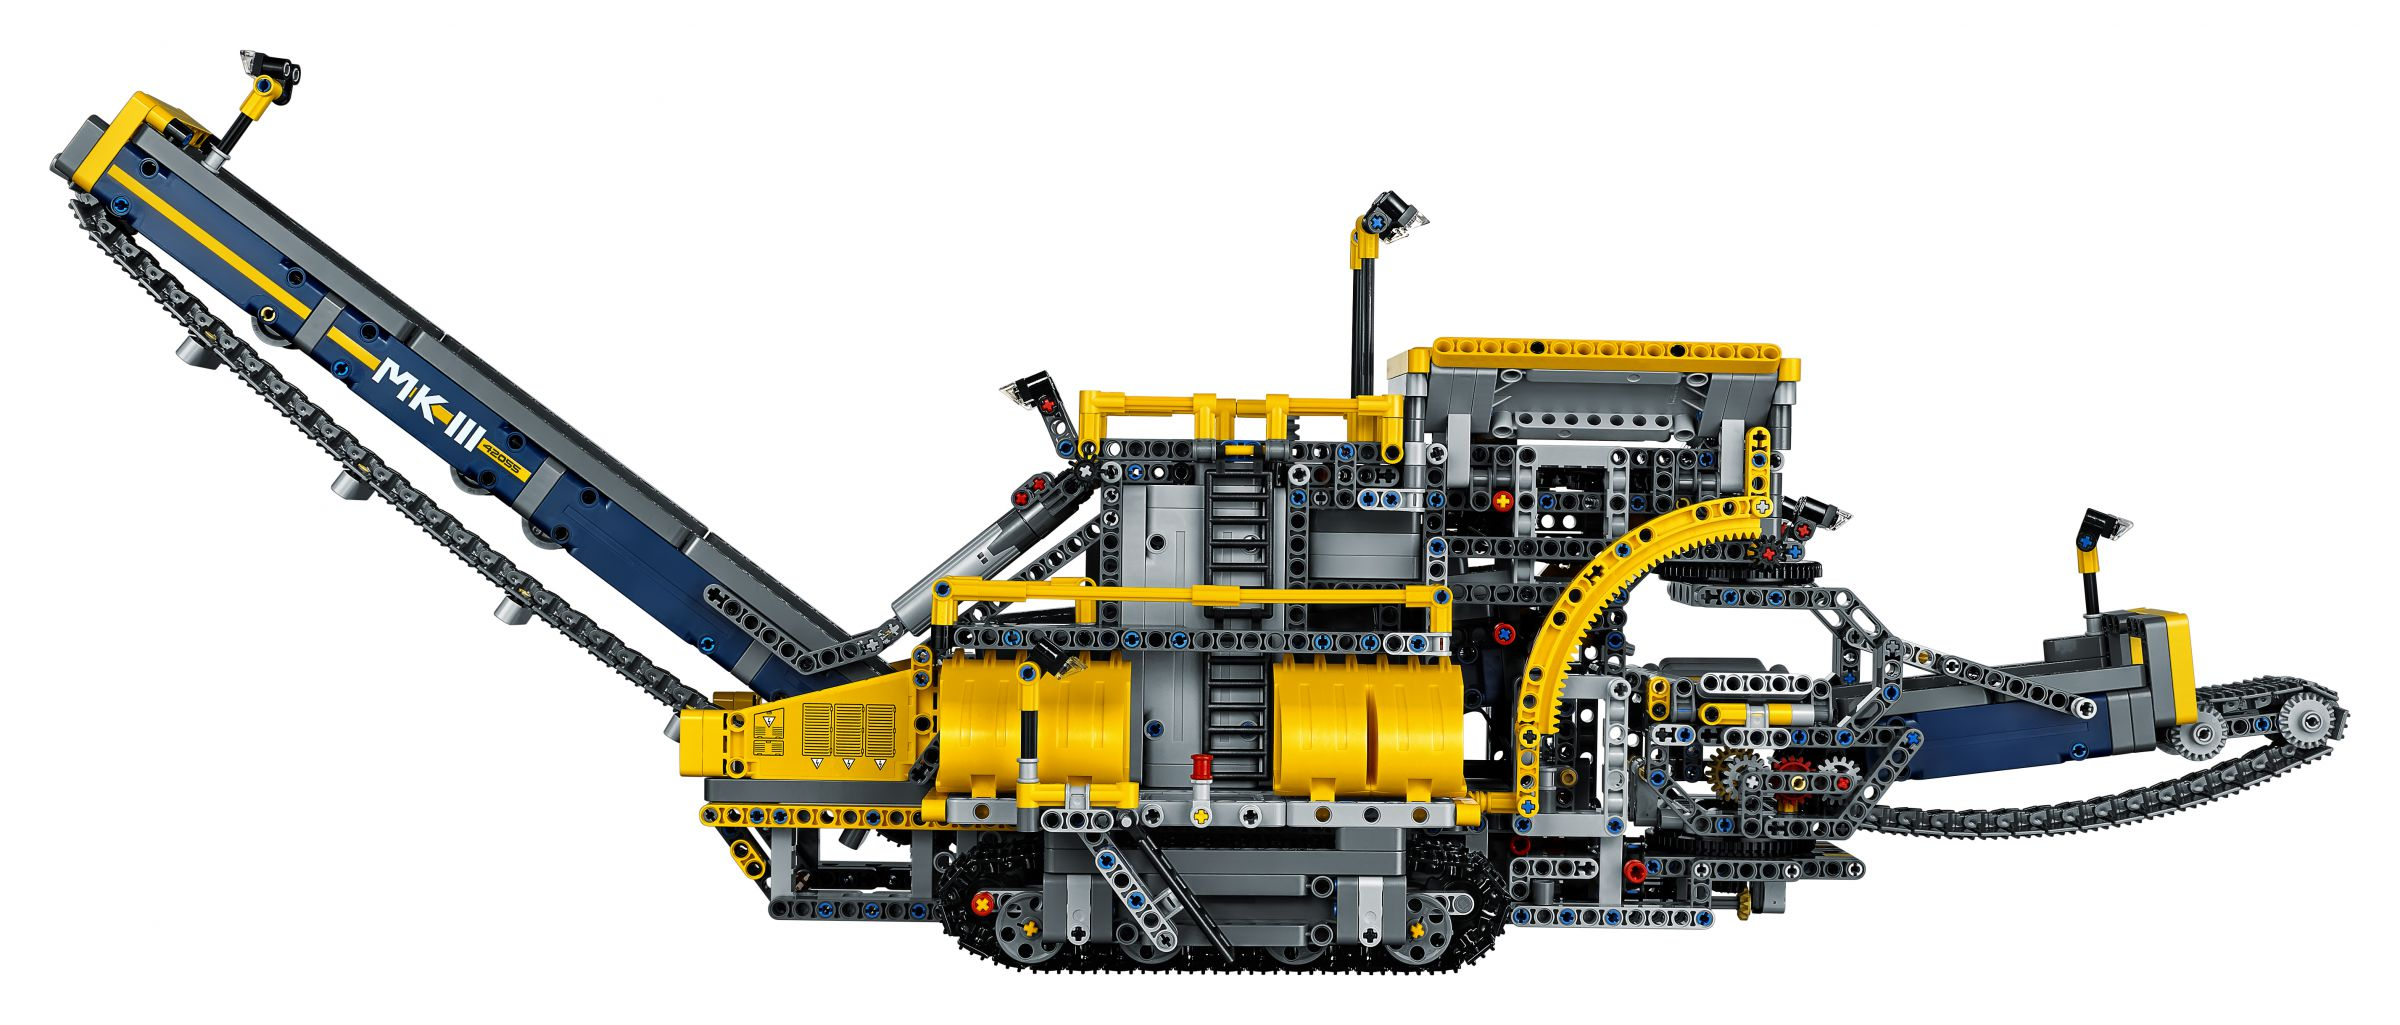 lego 42055 schaufelradbagger technic 2016 ab 167 87 27 gespart bucket wheel excavator. Black Bedroom Furniture Sets. Home Design Ideas